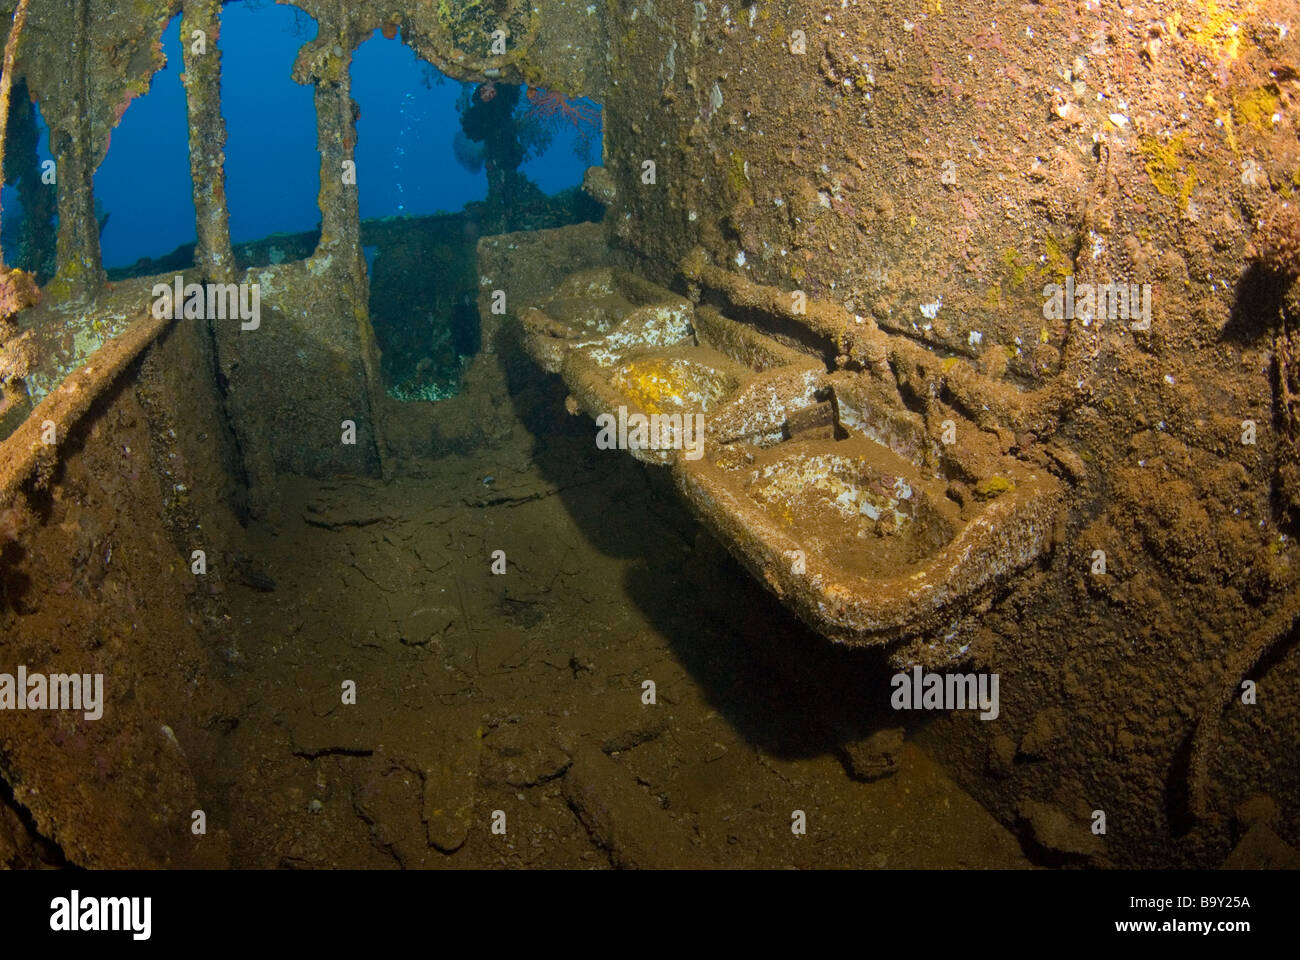 Sinks in the Fujikawa Maru wreck of Truk Lagoon Micronesia - Stock Image